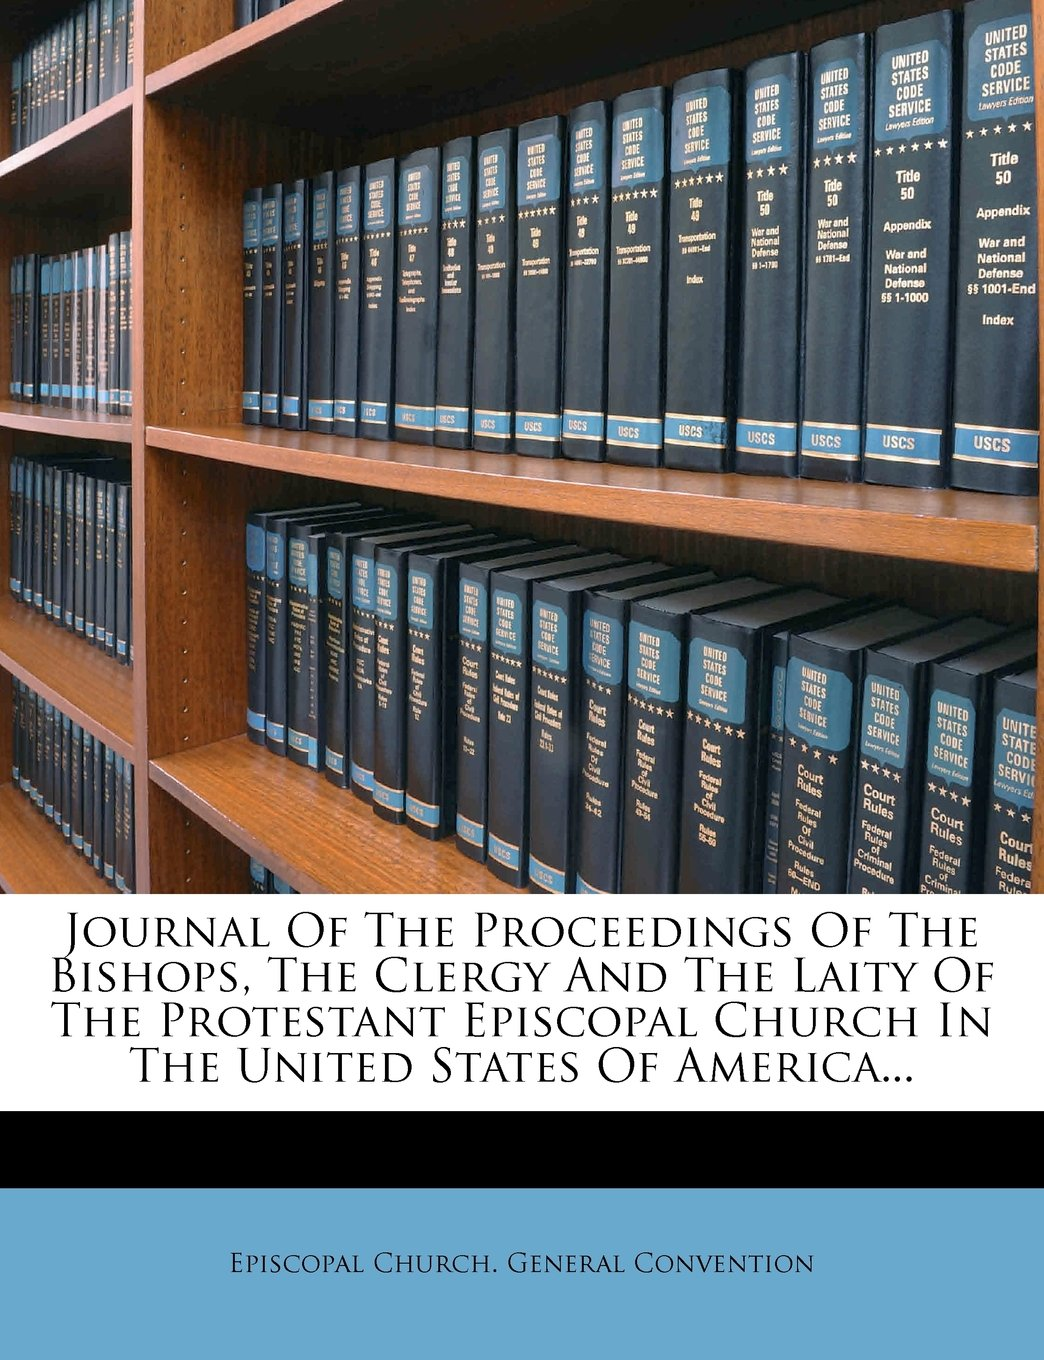 Journal Of The Proceedings Of The Bishops, The Clergy And The Laity Of The Protestant Episcopal Church In The United States Of America... ebook